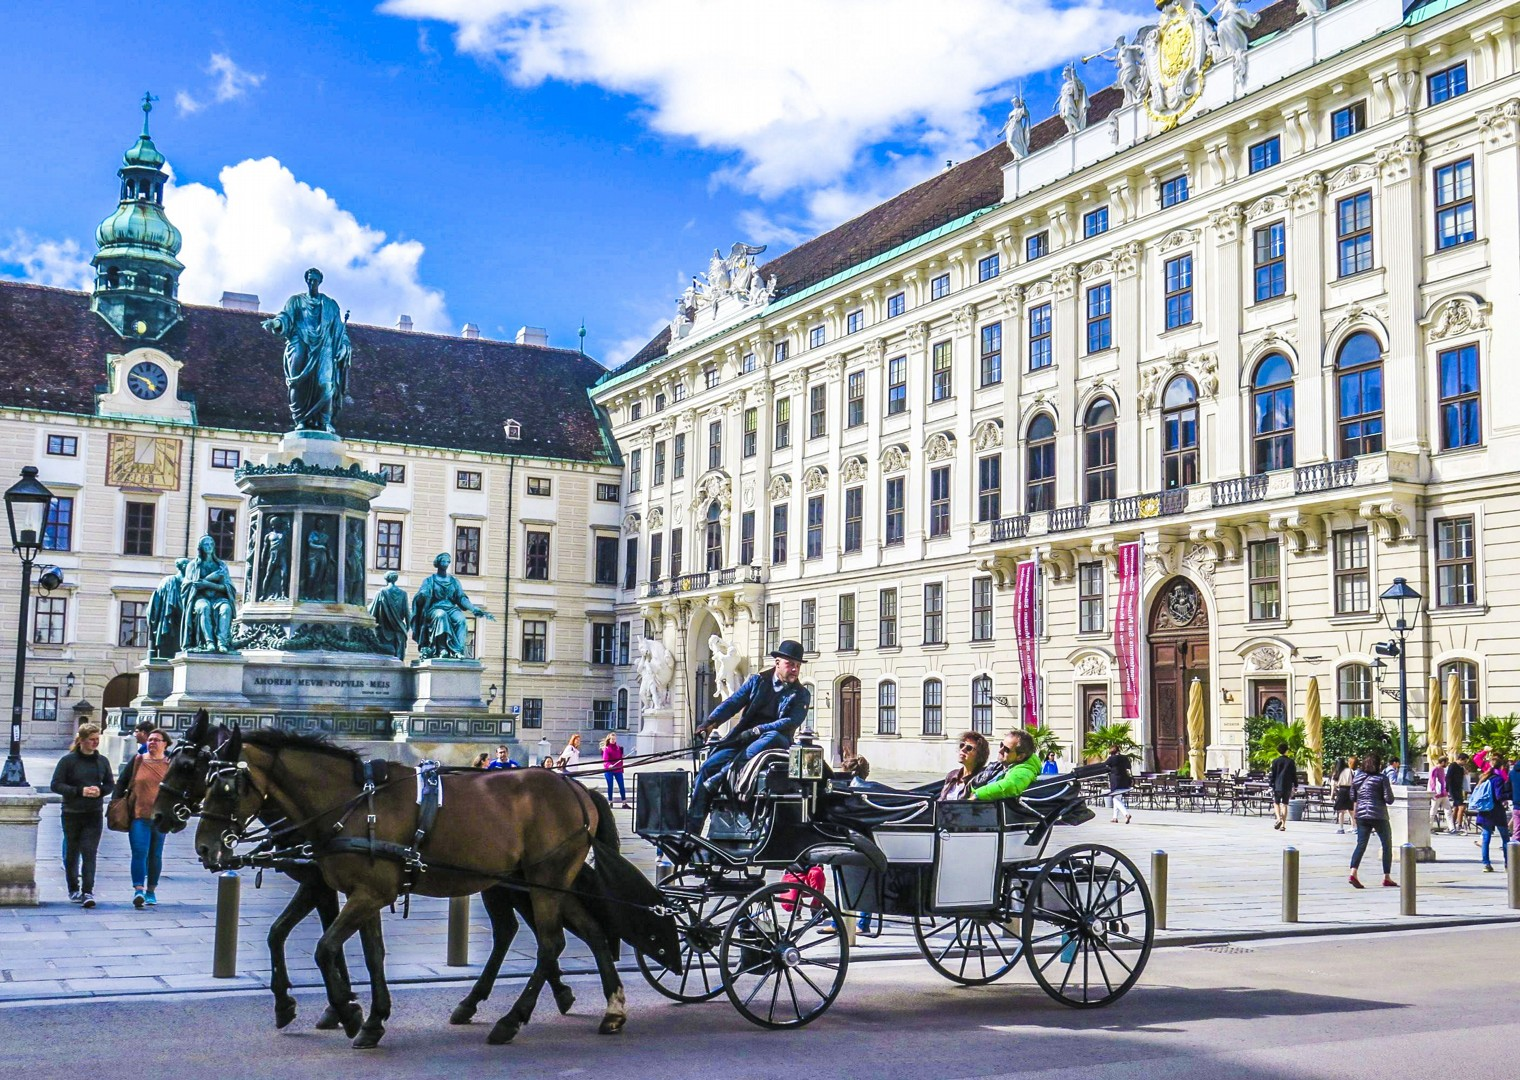 the-hofburg-palace-vienna-austria-bike-tour-self-guided-culture-fun.jpg - Germany and Austria - The Danube Cyclepath (10 Days) - Self-Guided Leisure Cycling Holiday - Leisure Cycling